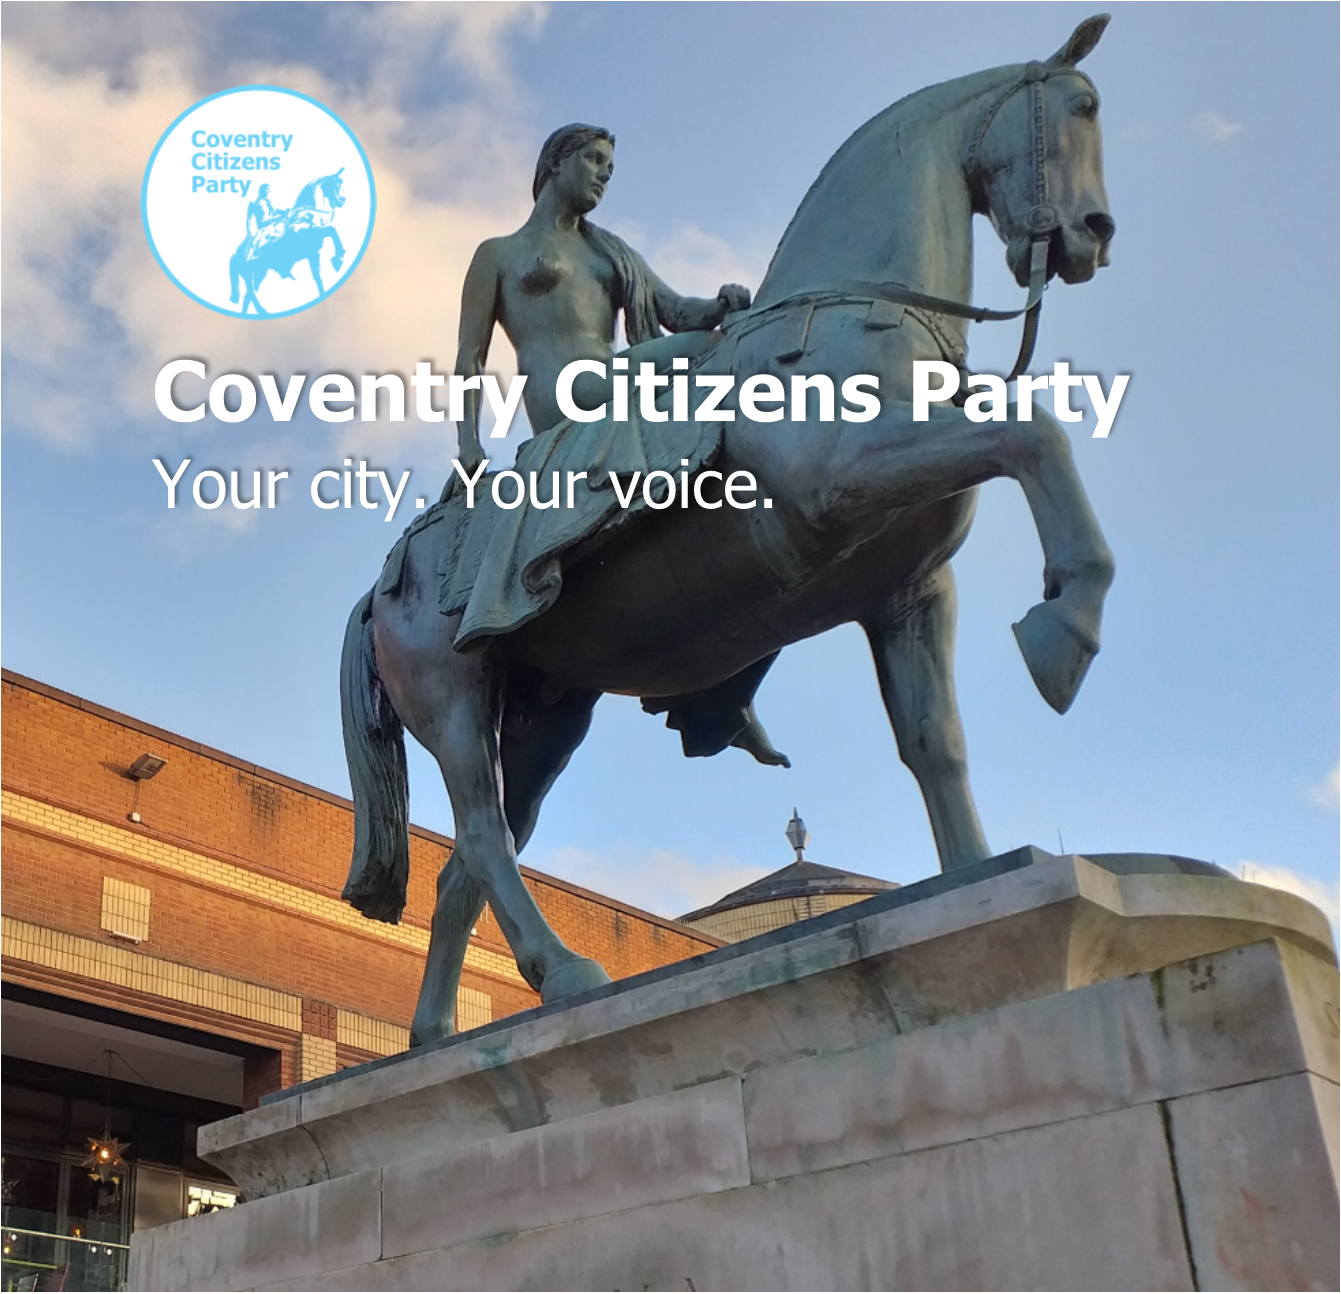 Coventry Citizens Party